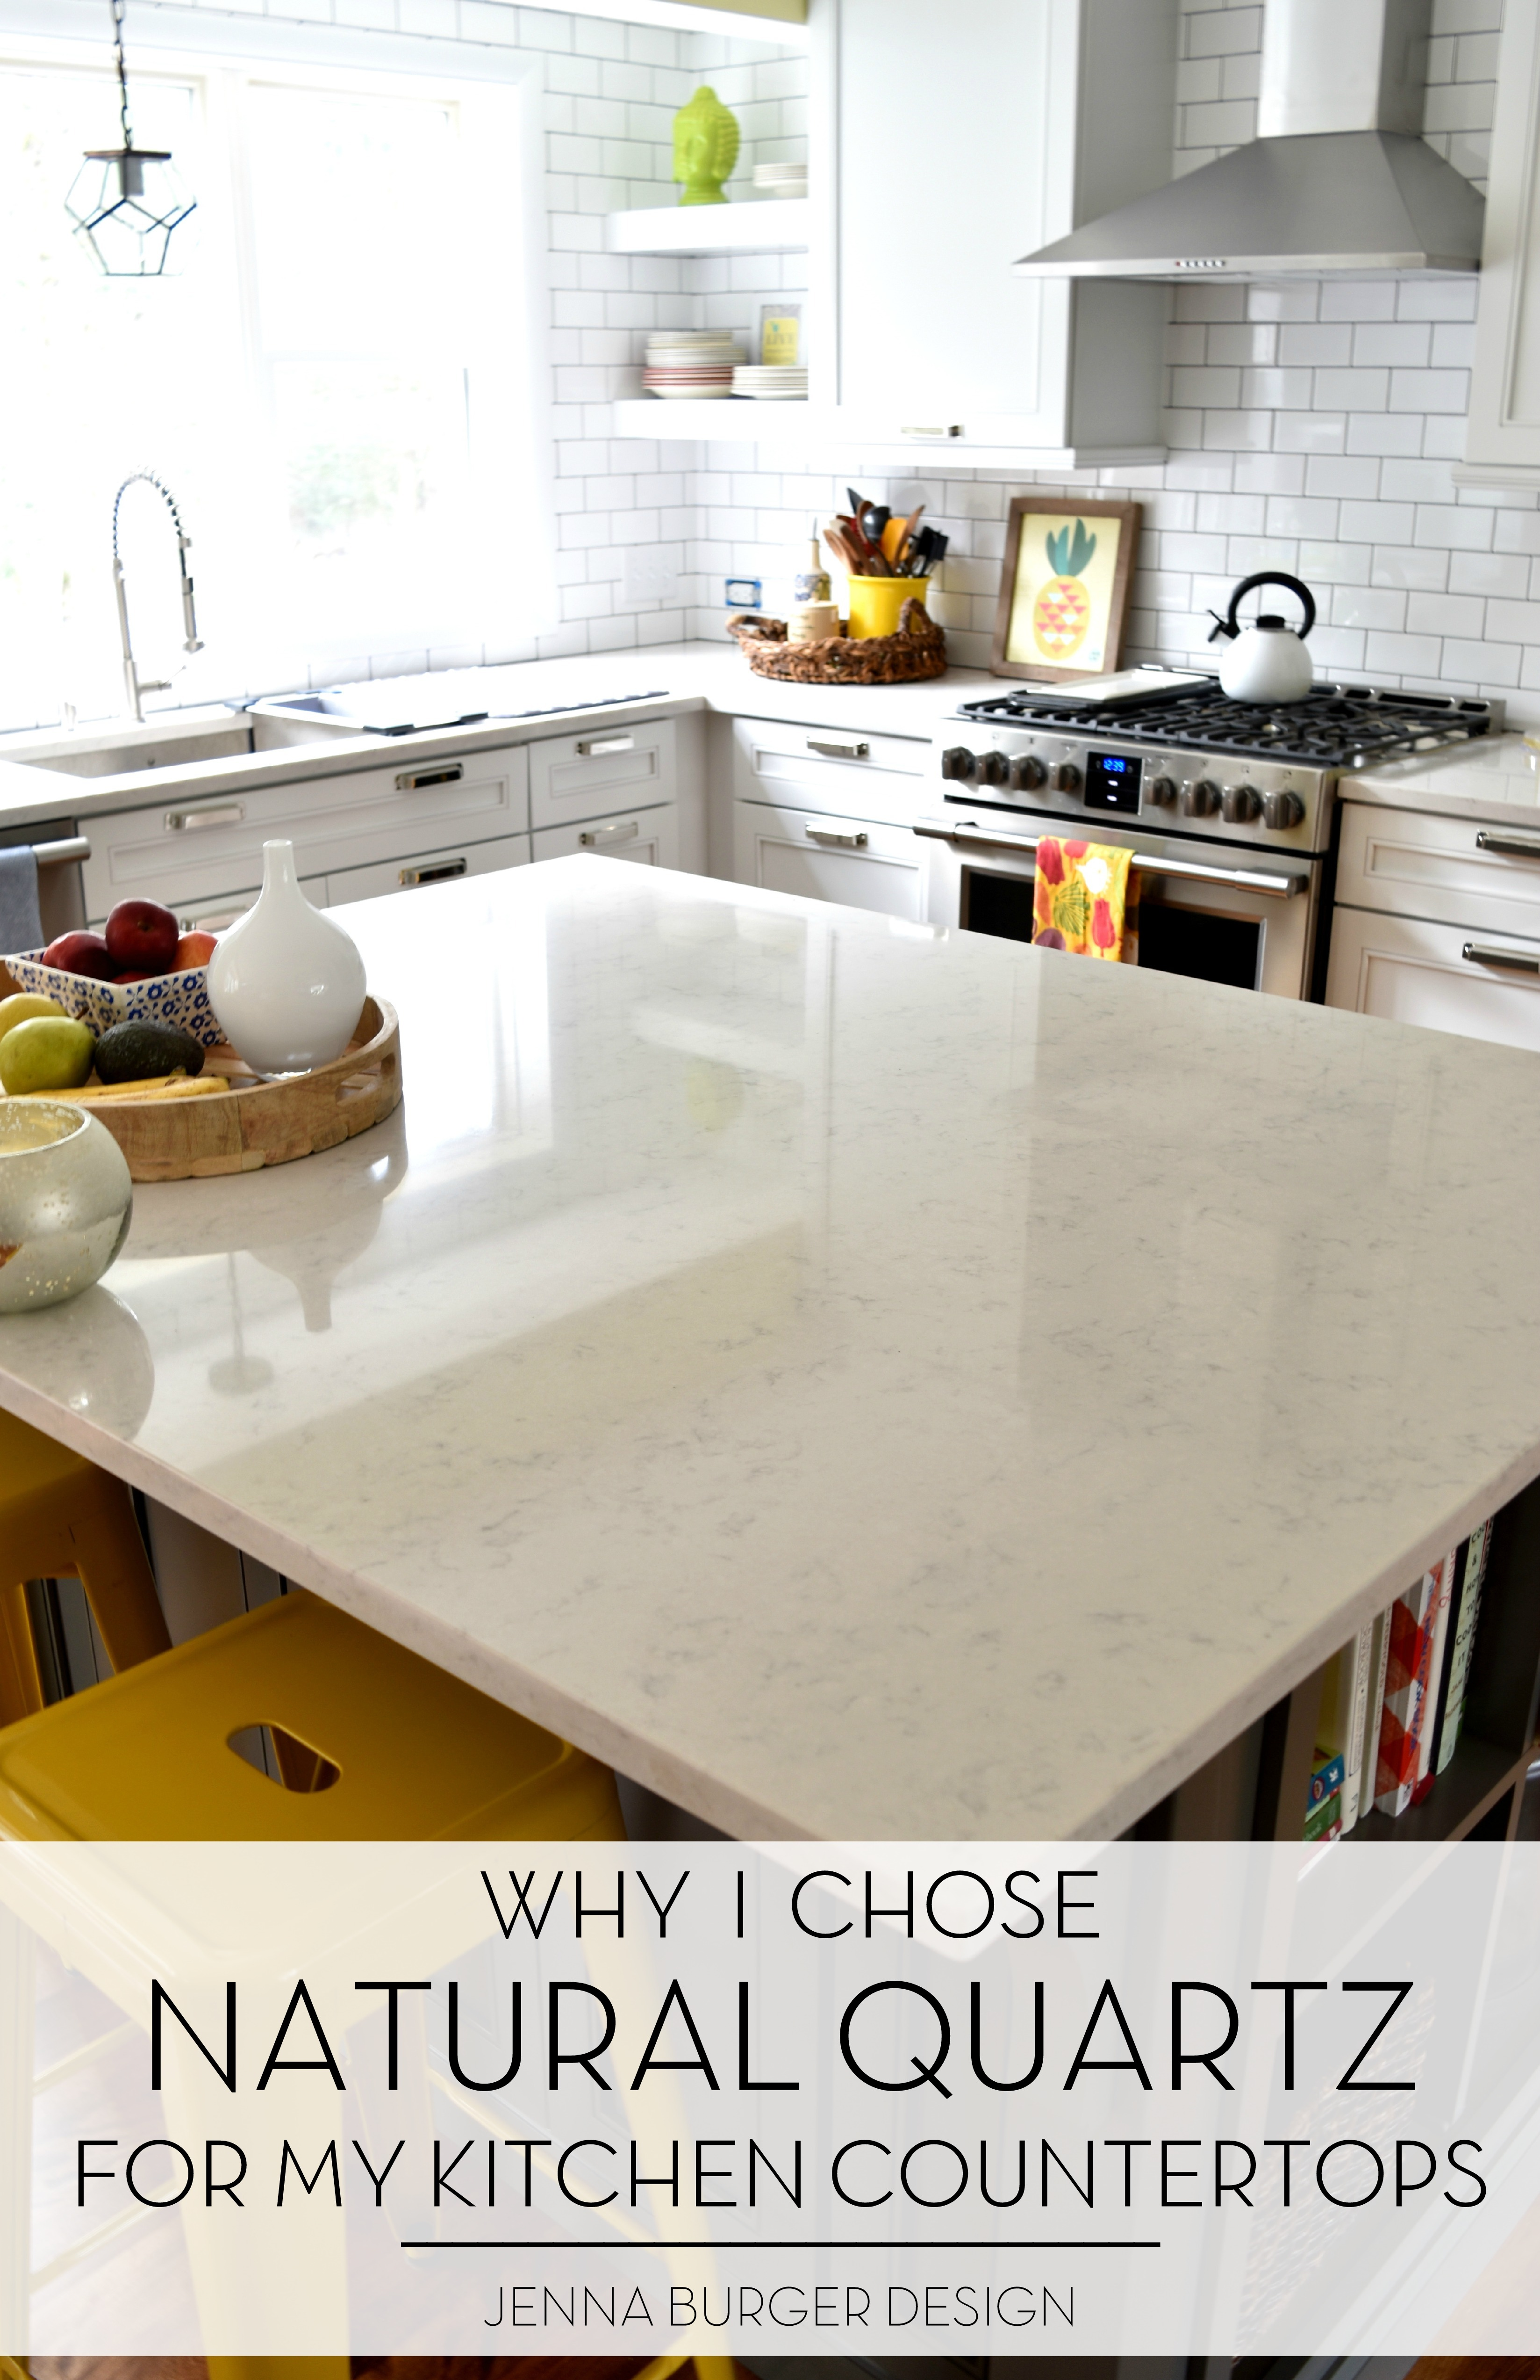 Natural Quartz Countertops In The Kitchen Was A Great Choice! Itu0027s Durable,  Maintenance Free